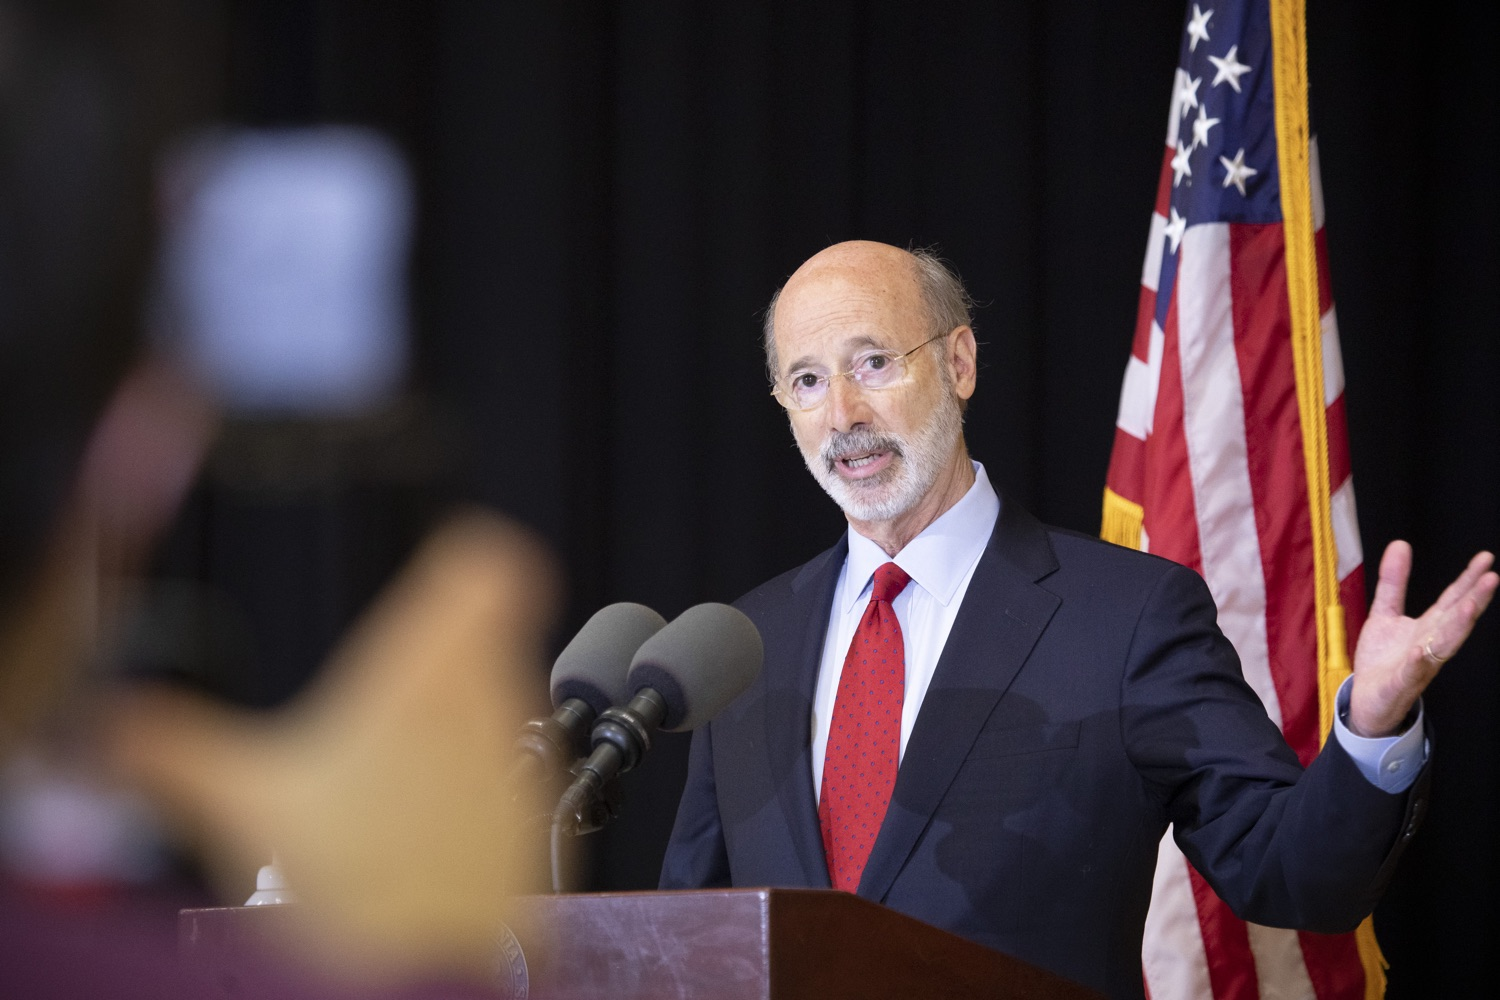 """<a href=""""https://filesource.wostreaming.net/commonwealthofpa/photo/18310_gov_adult_use_cannabis_dz_001.jpg"""" target=""""_blank"""">⇣Download Photo<br></a>Governor Tom Wolf speaks to the press.Governor Tom Wolf visited The Mountain Center in Tobyhanna, Monroe County today to talk about the economic growth potential and restorative justice benefits of legalizing adult-use cannabis, something the state General Assembly has not yet done despite multiple requests from the governor and Lieutenant Governor John Fetterman to take up legislation this fall.  Tobyhanna, PA  October 13, 2020"""